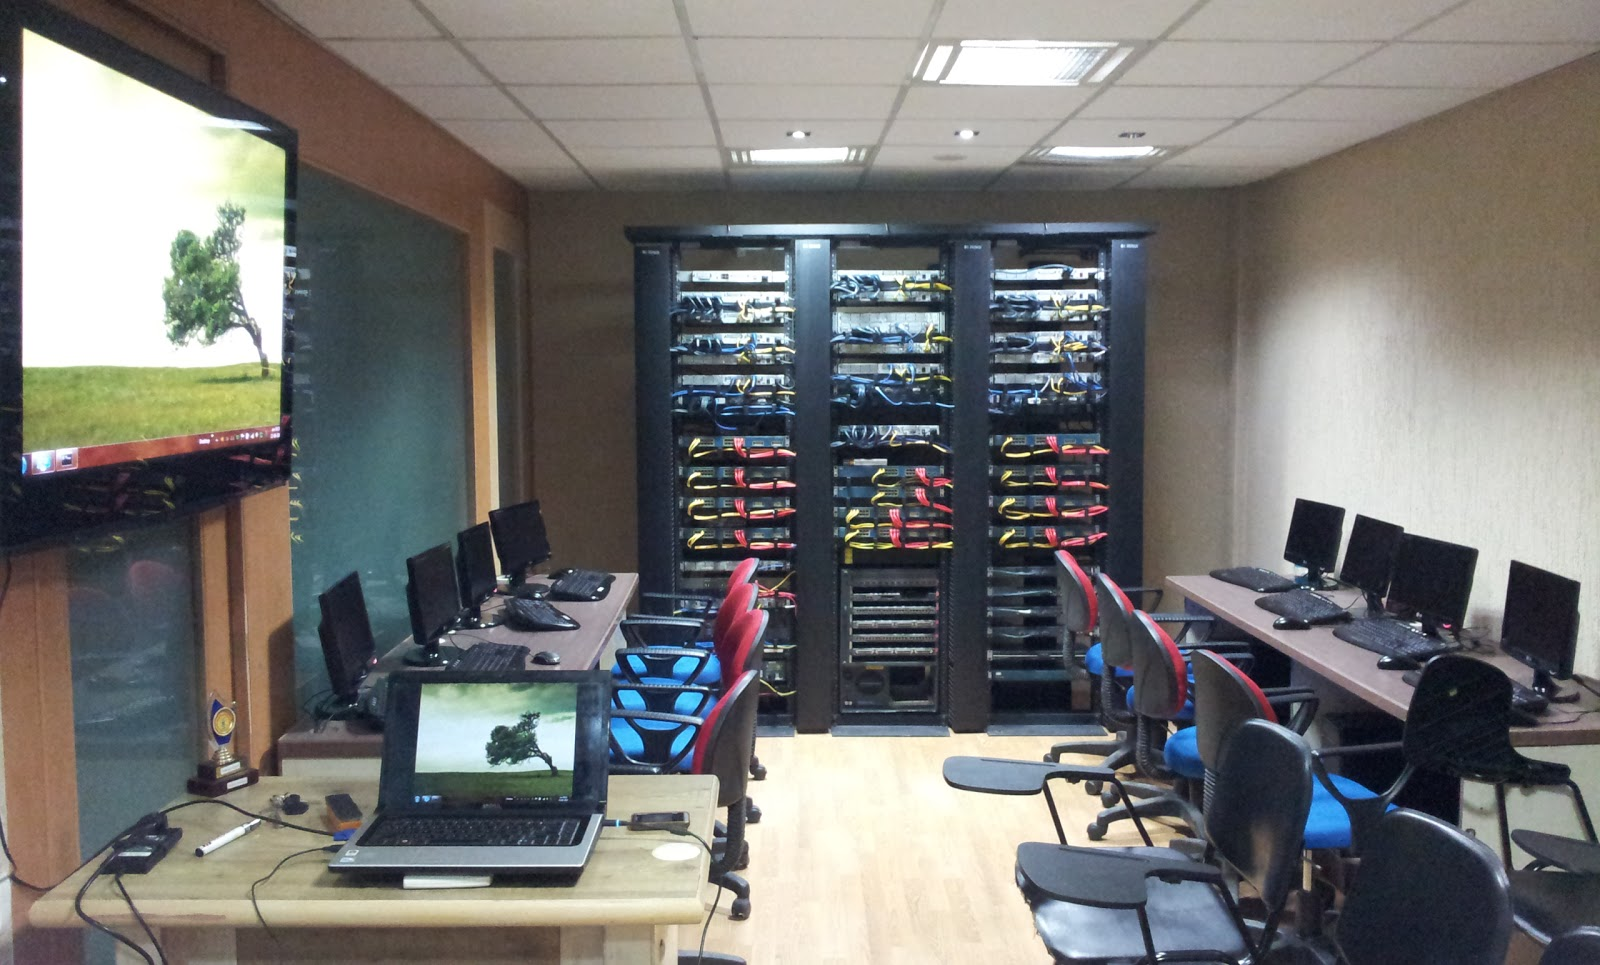 NEW CCIE LAB PHOTOS OF ZOOM TECHNOLOGIES-AMEERPET